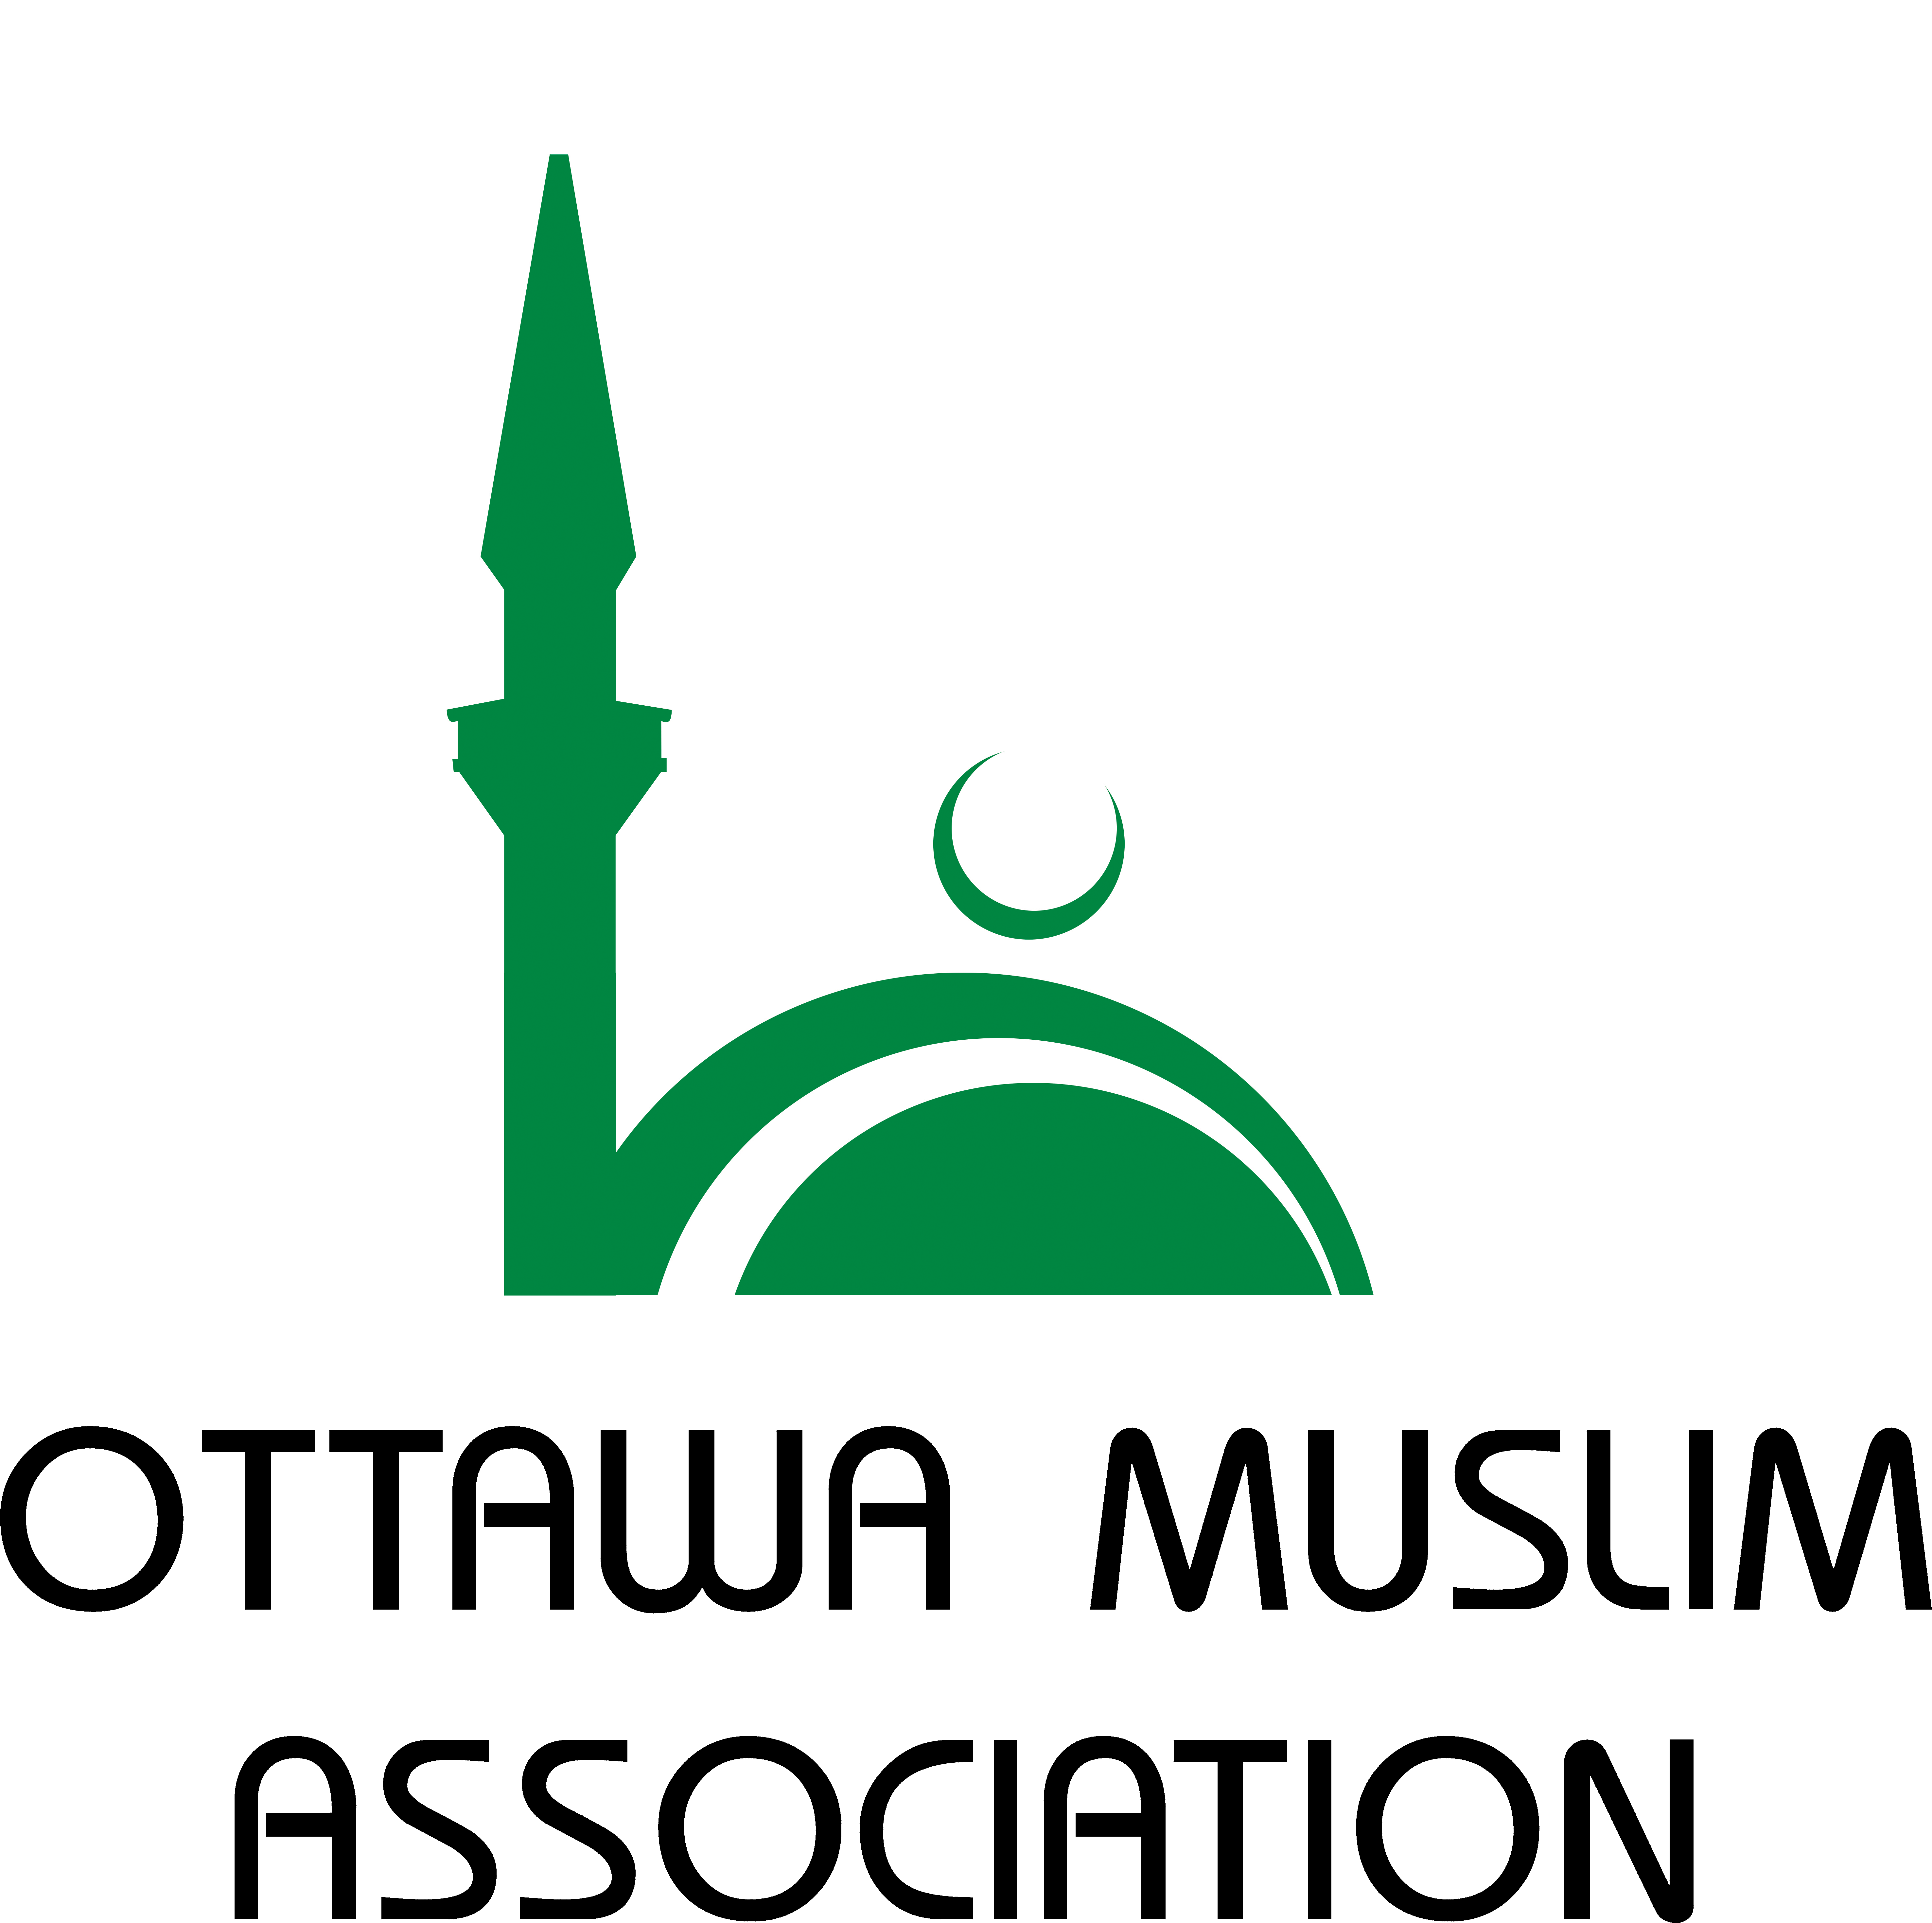 Ottawa Muslim Association